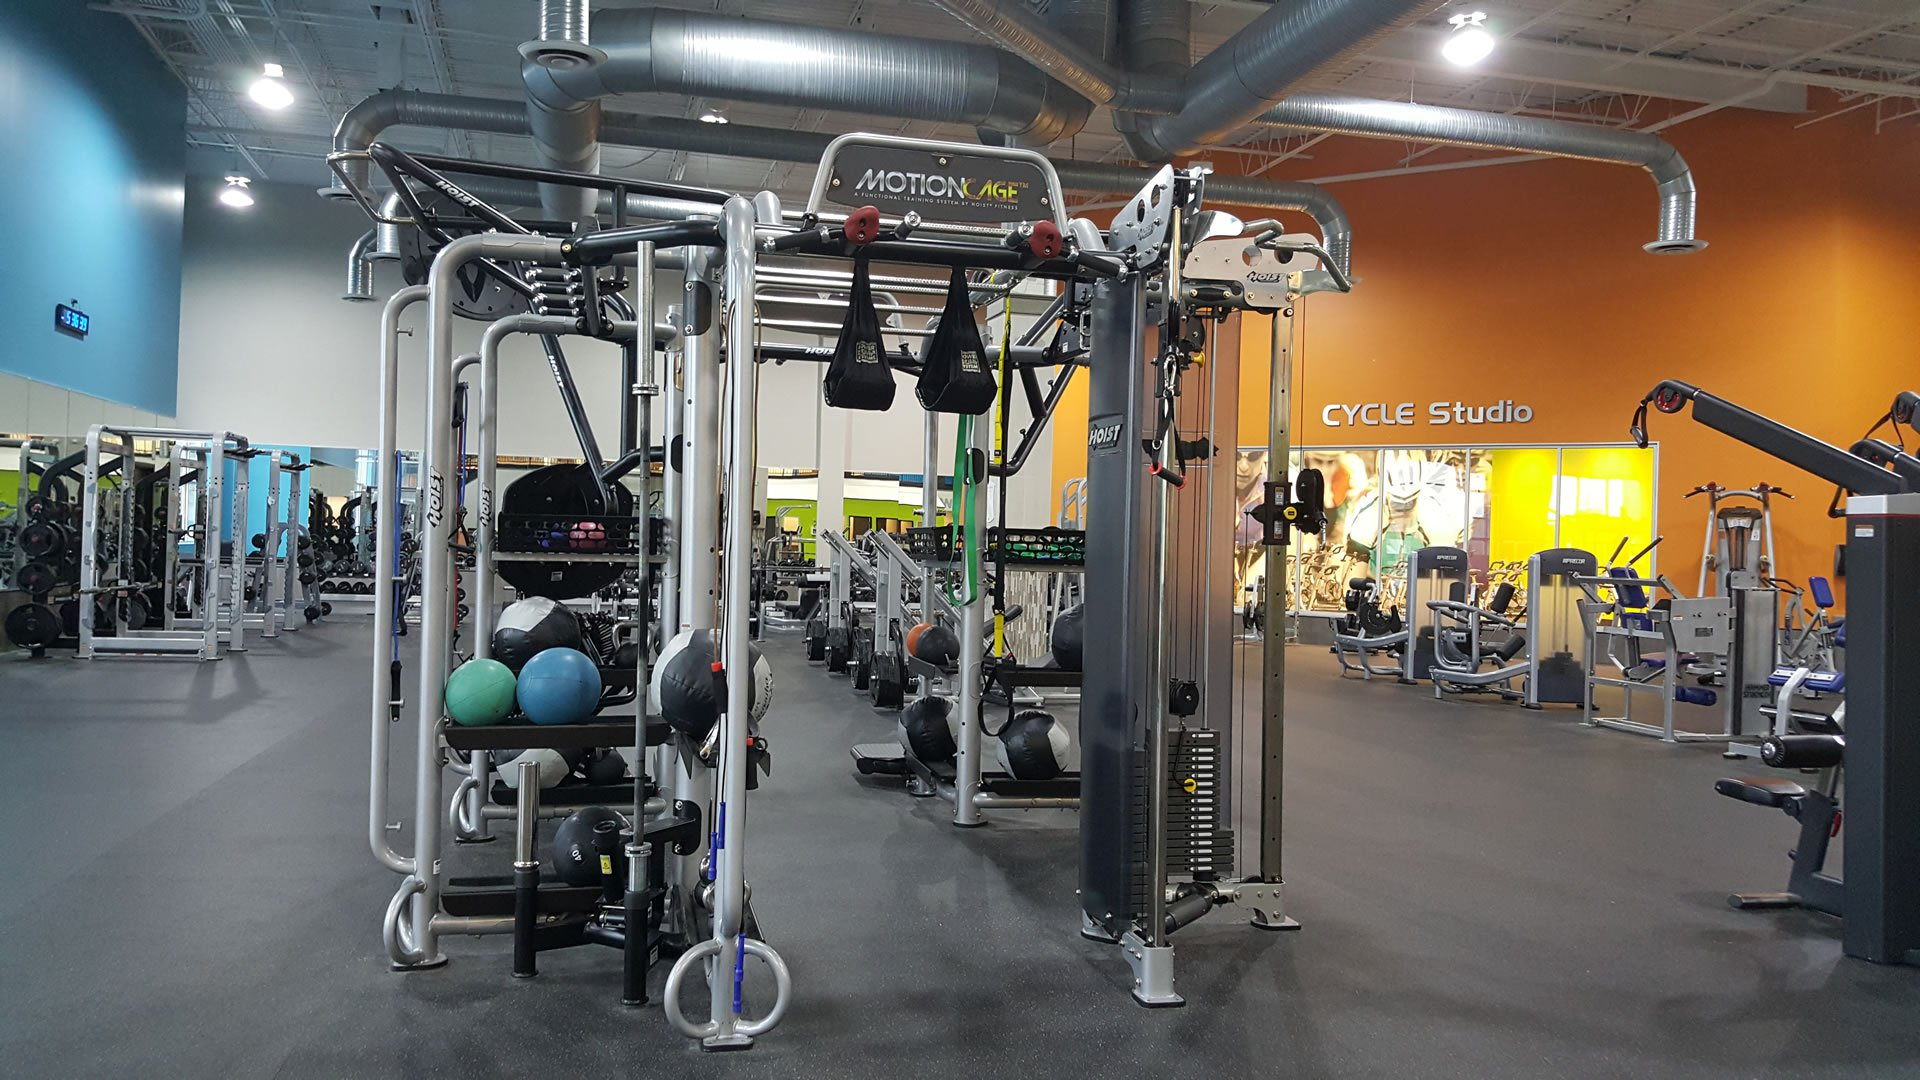 Onelife fitness best in class windermere ga gyms for Gym fitness